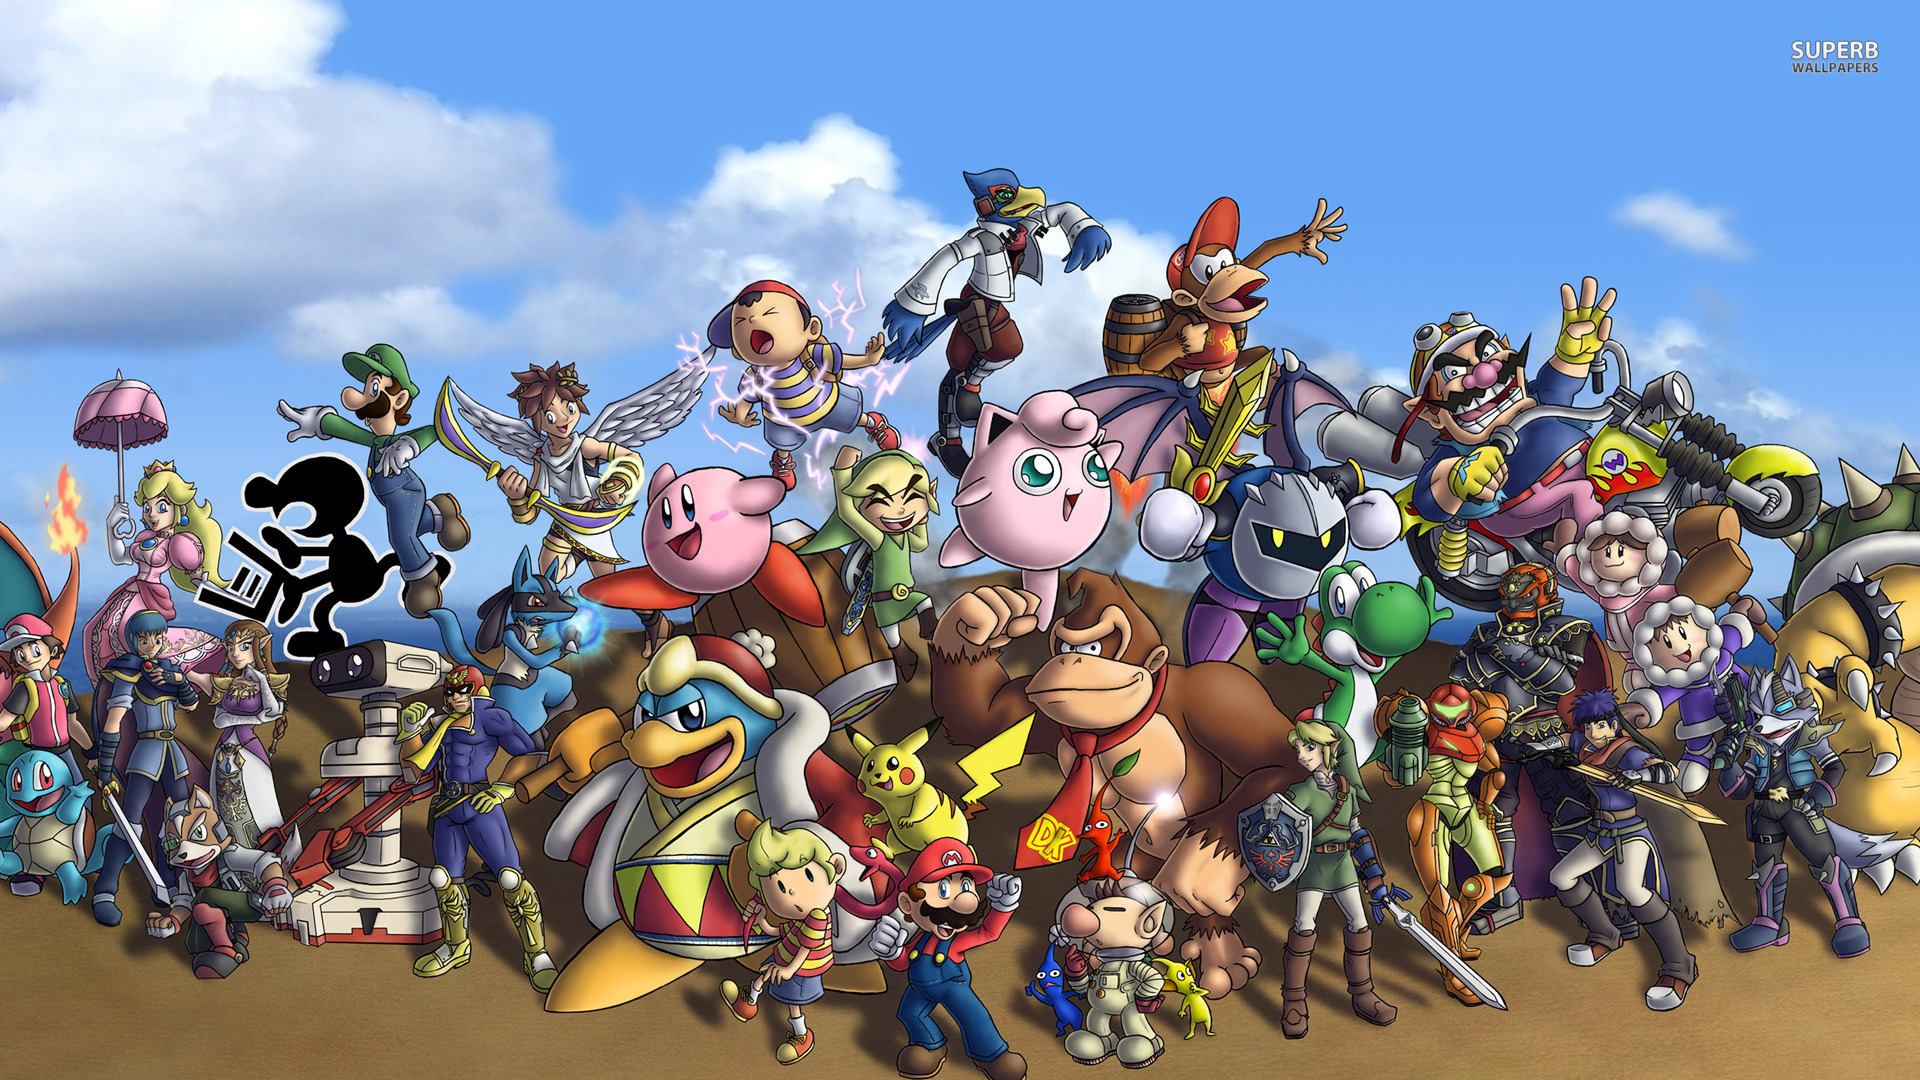 Super Smash Bros. wallpaper 1920x1080